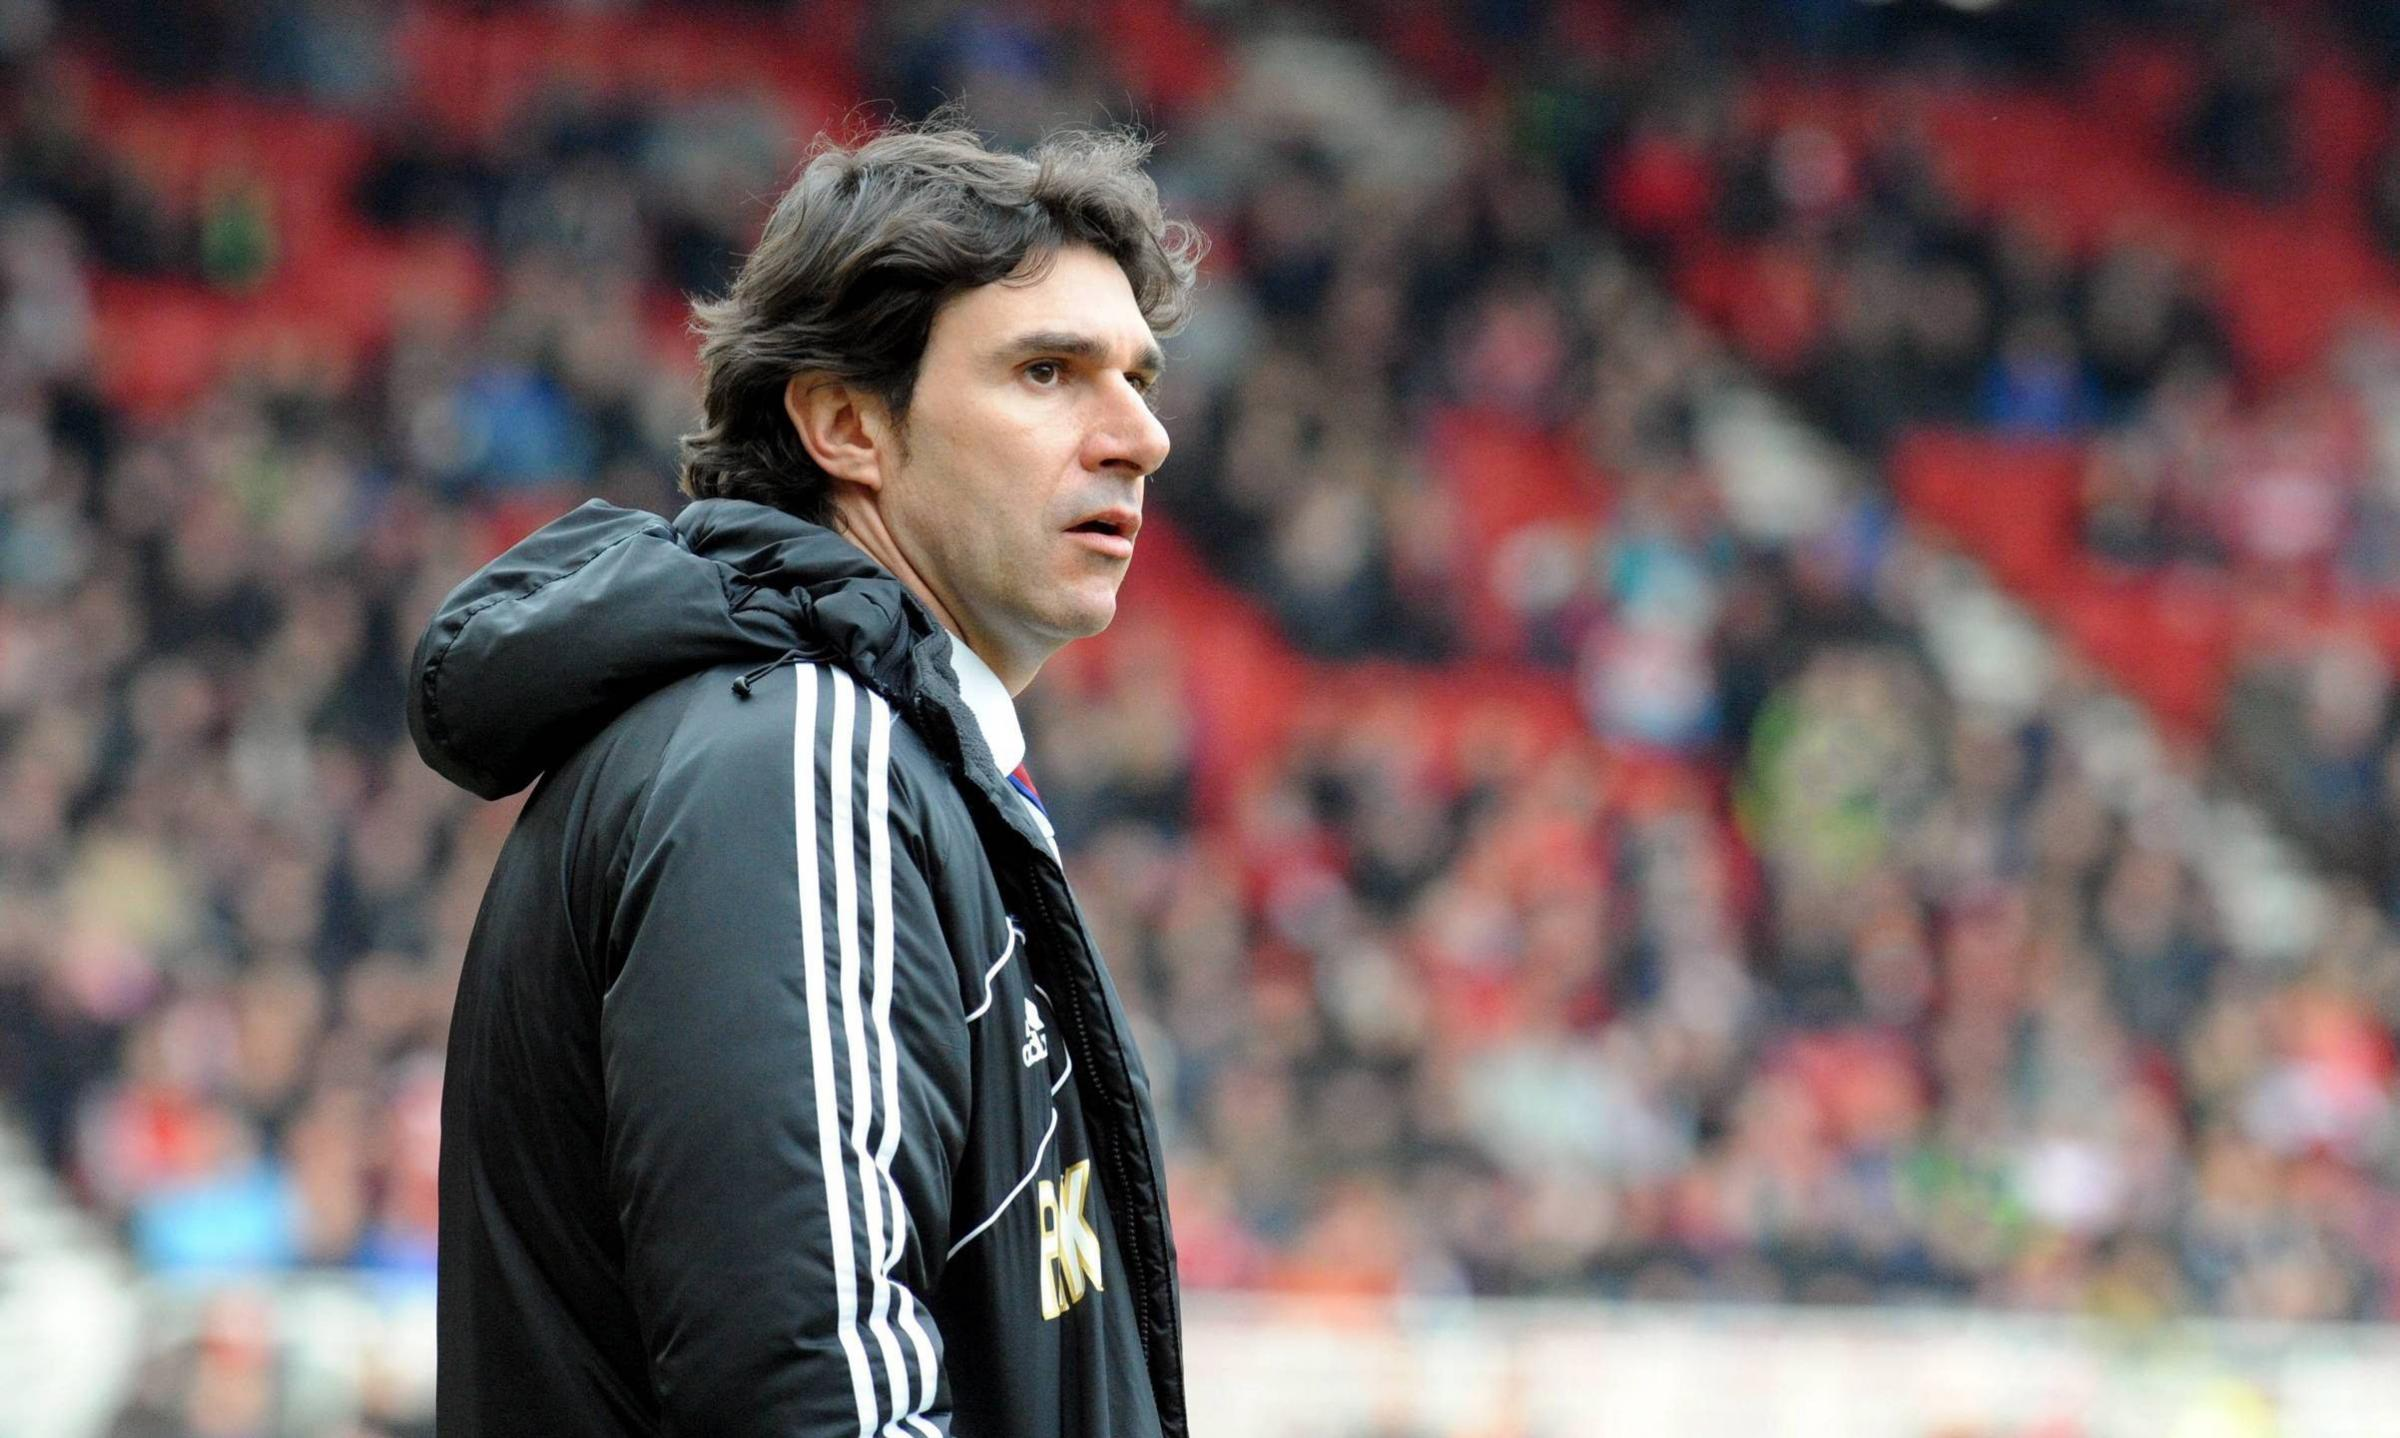 Gibson and Omeruo can flourish as a partnership, believes Middlesbrough boss Aitor Karanka